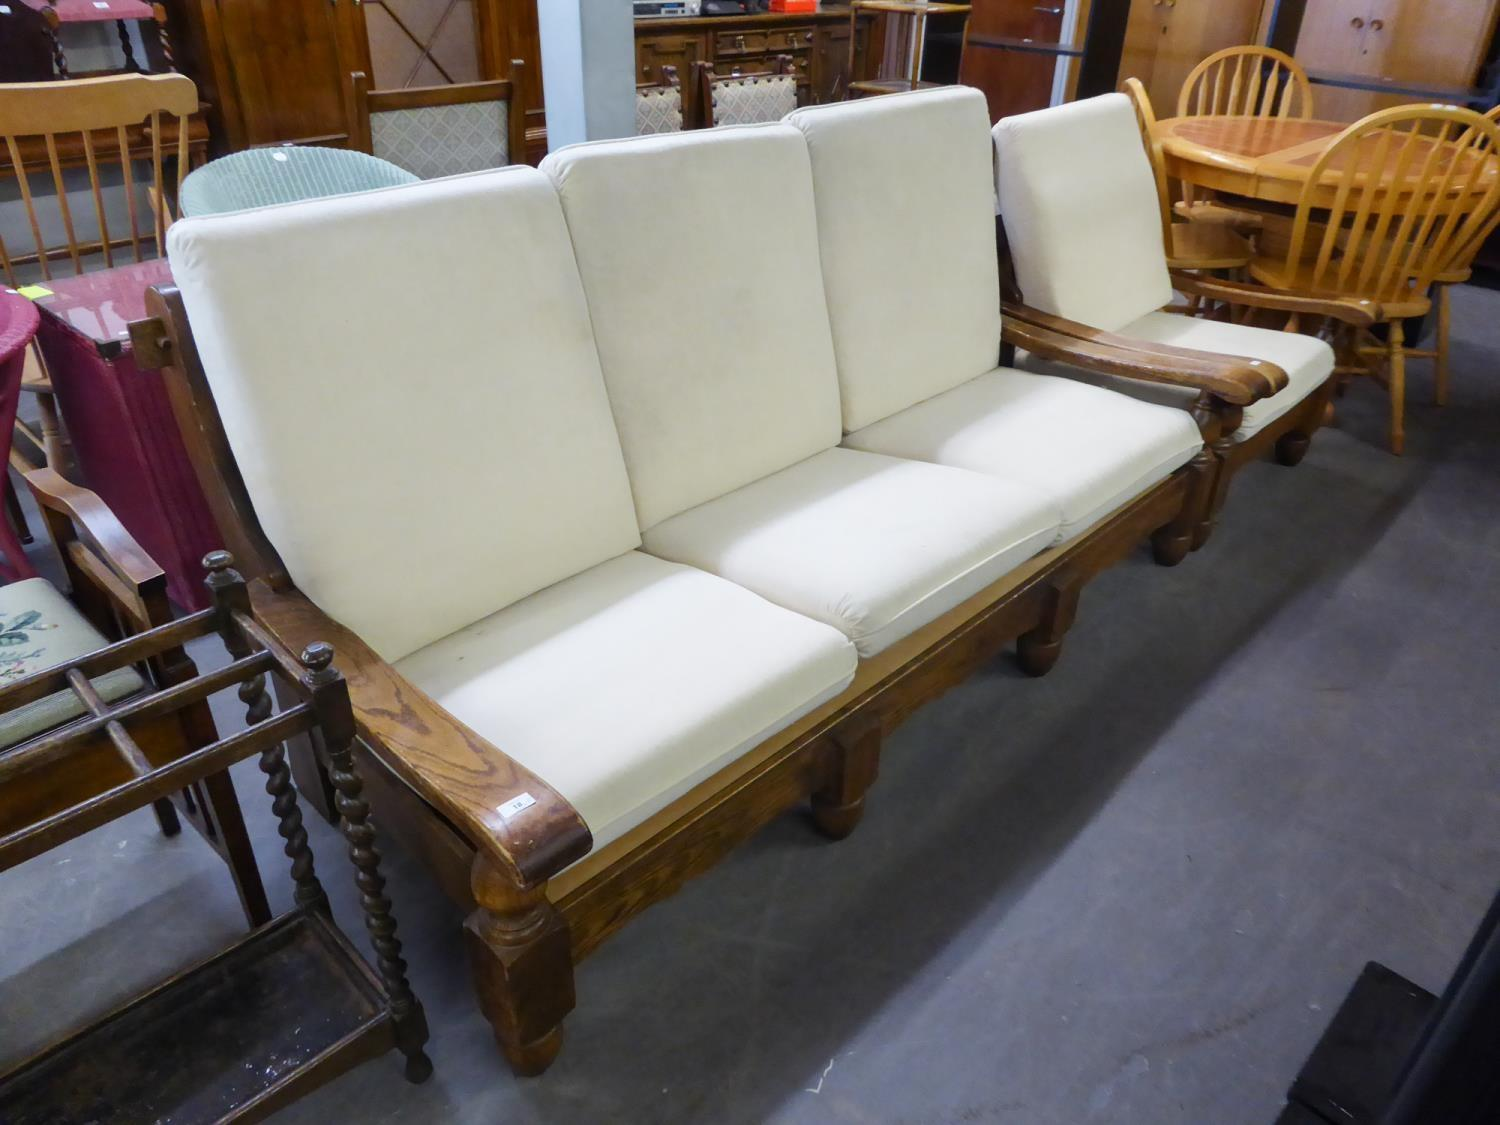 AN OAK FRAMED THREE SEATER SETTEE AND MATCHING LOUNGE ARMCHAIR, WITH LOOSE BACK AND SEAT CUSHIONS